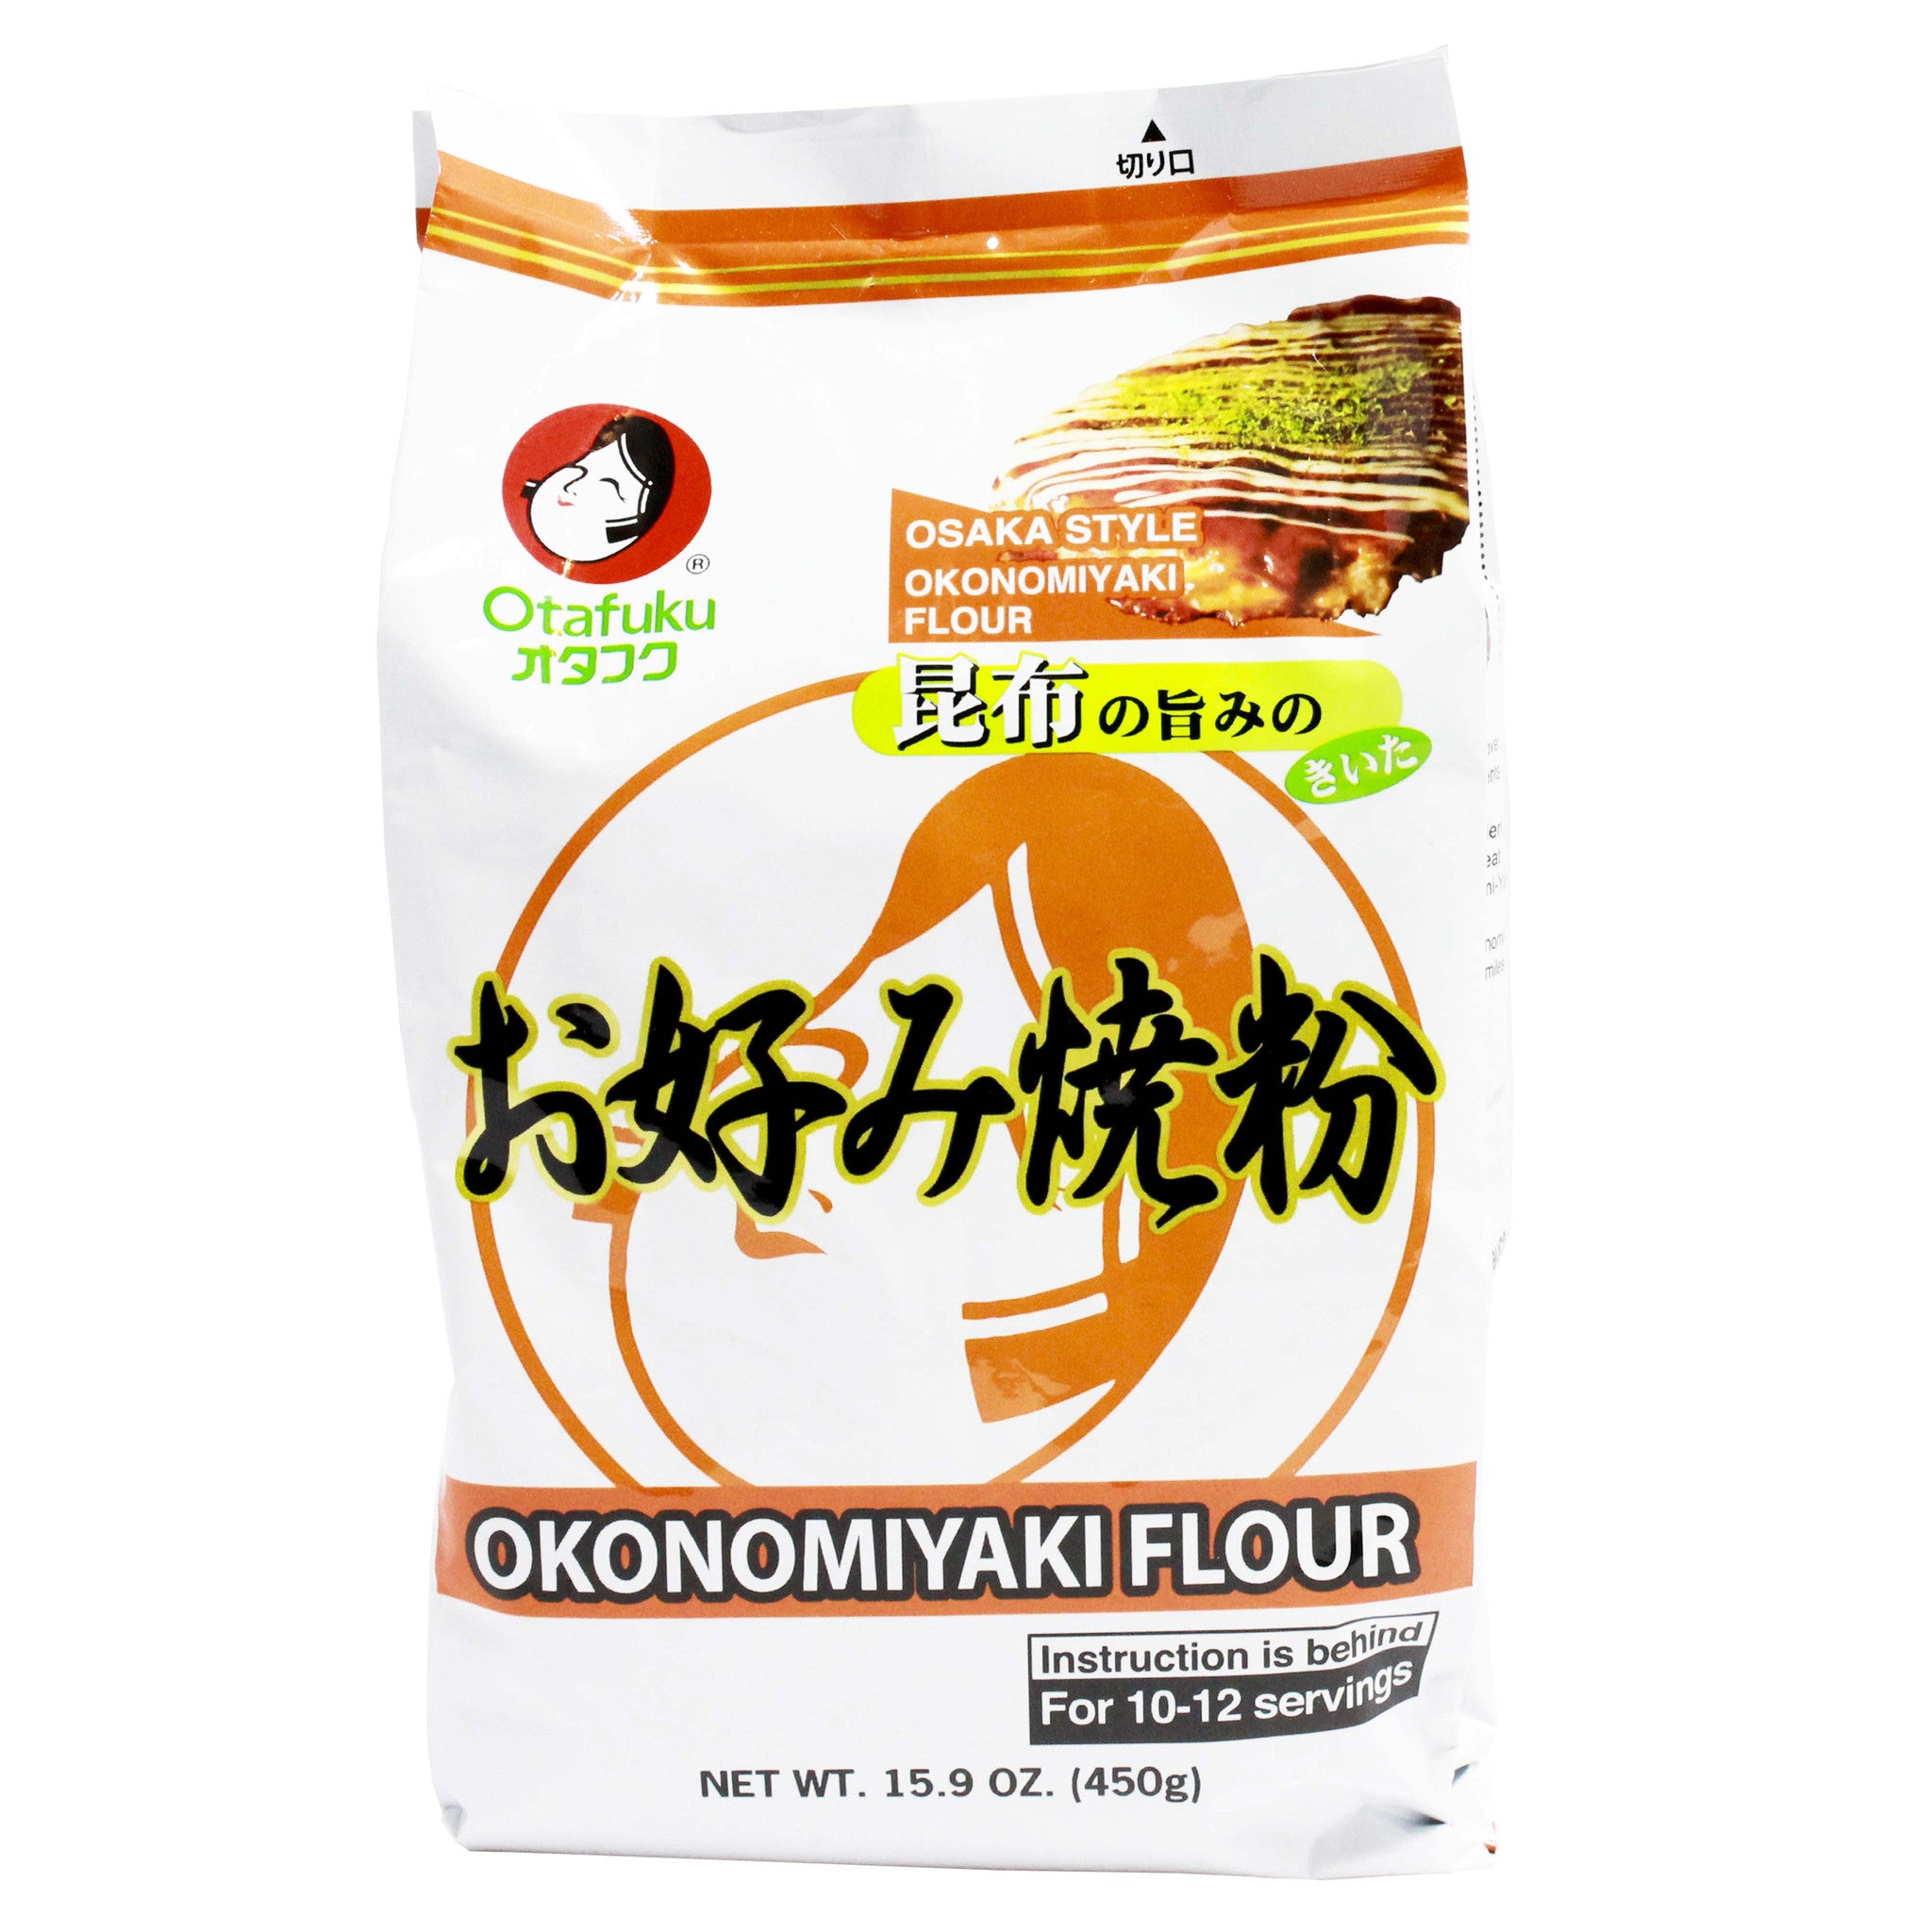 how to make okonimyaki flour